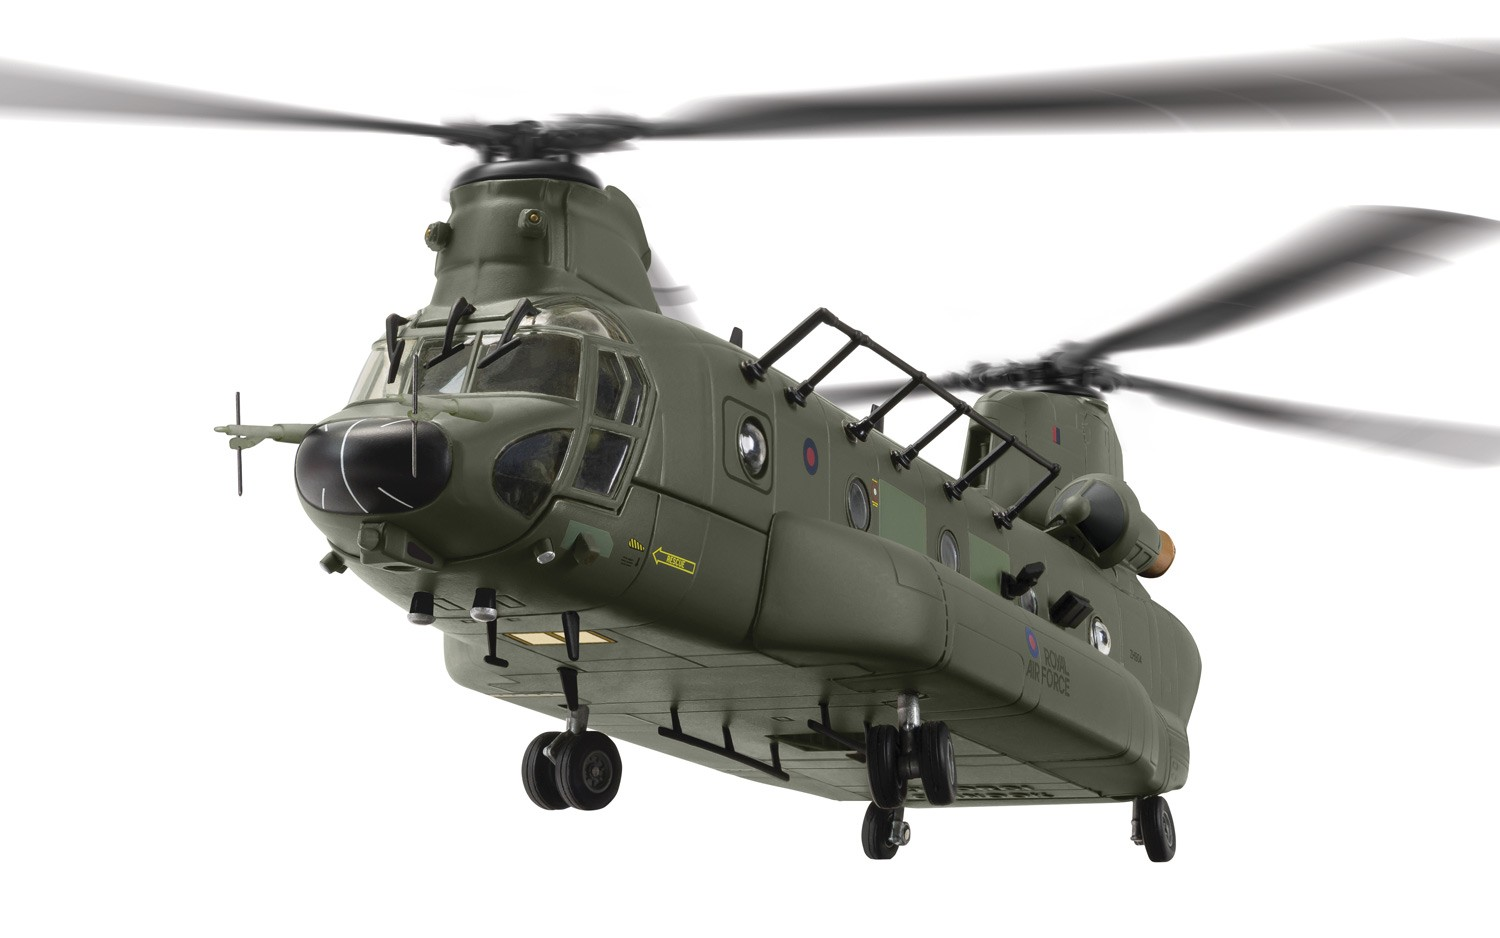 rc blackhawk helicopter for sale with Corgi Aa34213 Boeing Vertol Chinook Hc 3 Zh904 Raf No 18 Squadron Odiham 2012 on Corgi Aa34213 Boeing Vertol Chinook Hc 3 Zh904 Raf No 18 Squadron Odiham 2012 together with Military Helicopter Wallpapers besides 101095 besides 3 in addition Jesus 20cross.